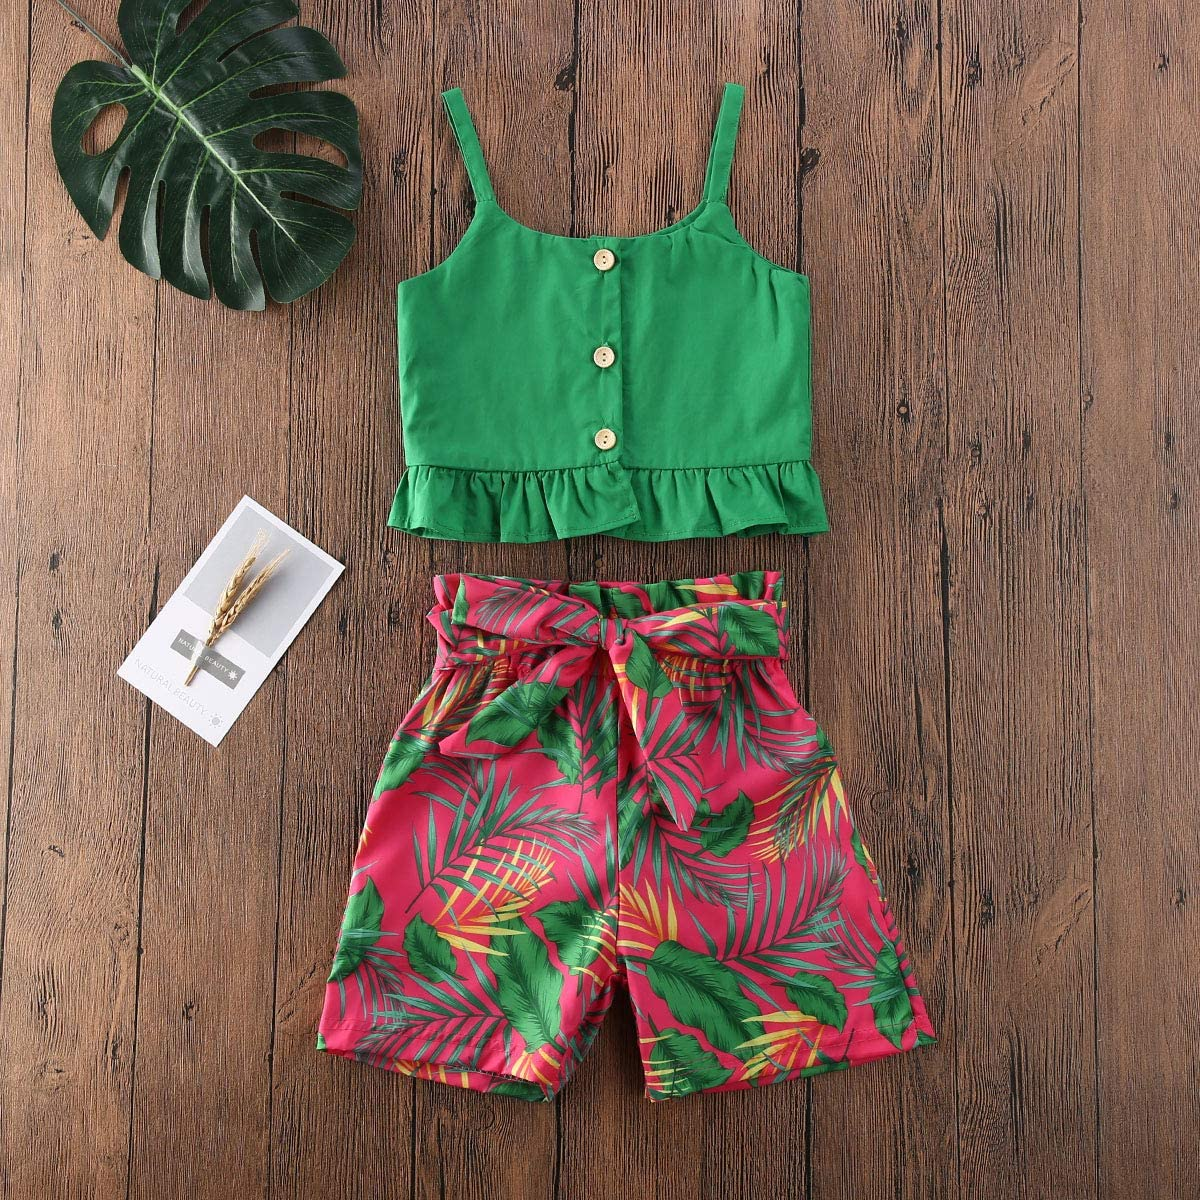 Long Skirts Outfits Clothes Set Toddler Baby Girl Strap Banana Leaf Print Strappy Cold Shoulder Cropped Top